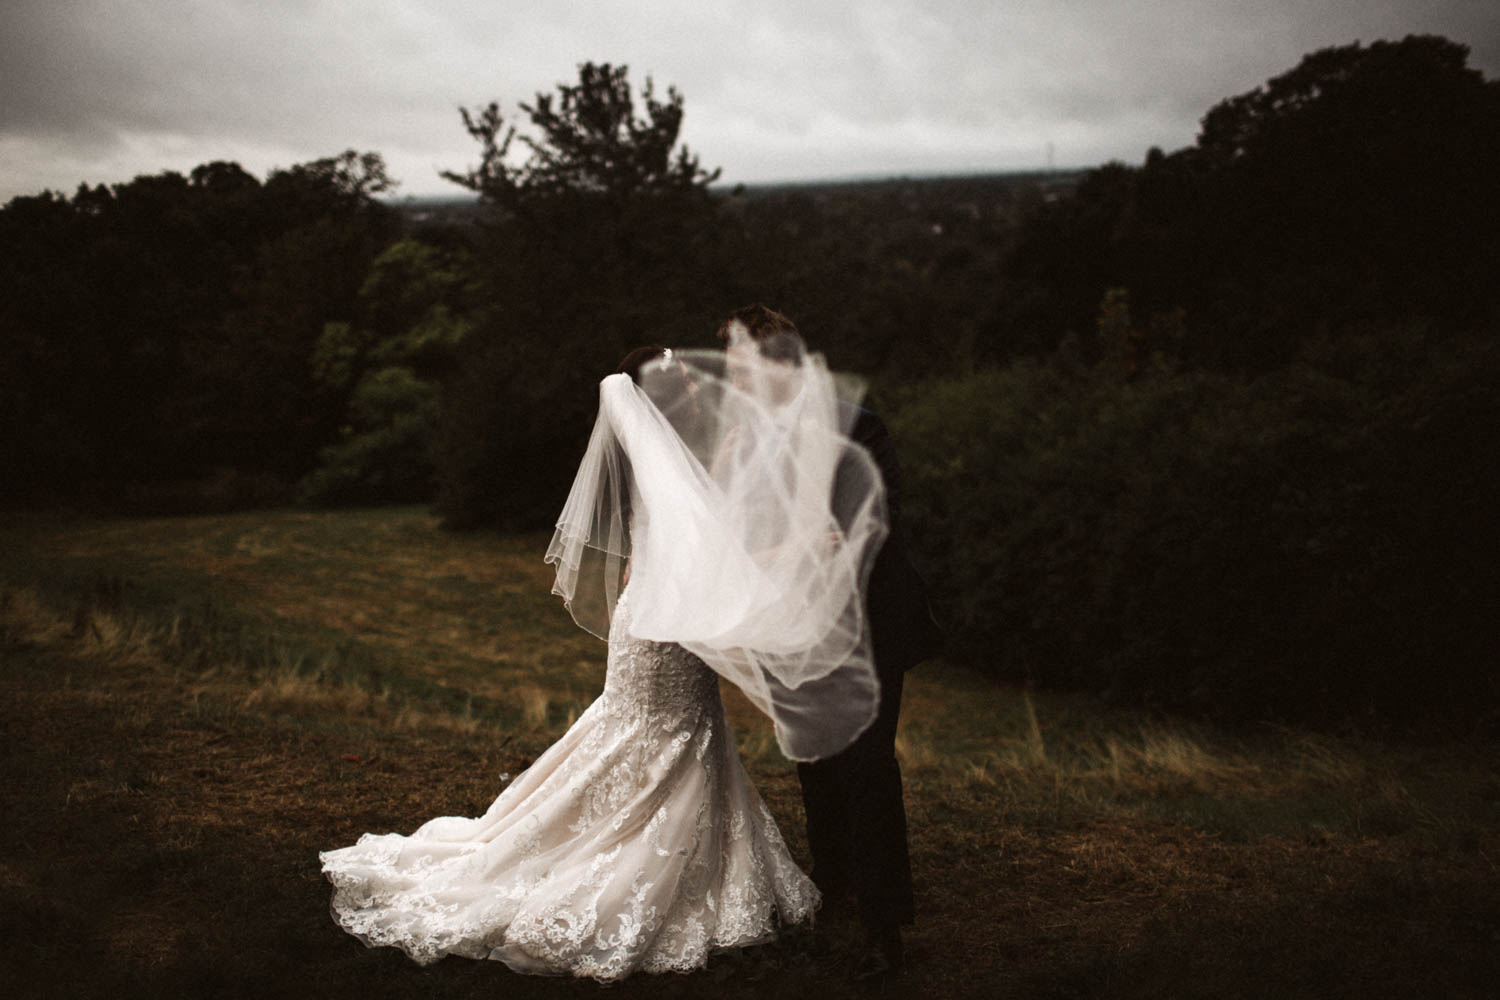 a creative portrait of the couple in the wind and rain